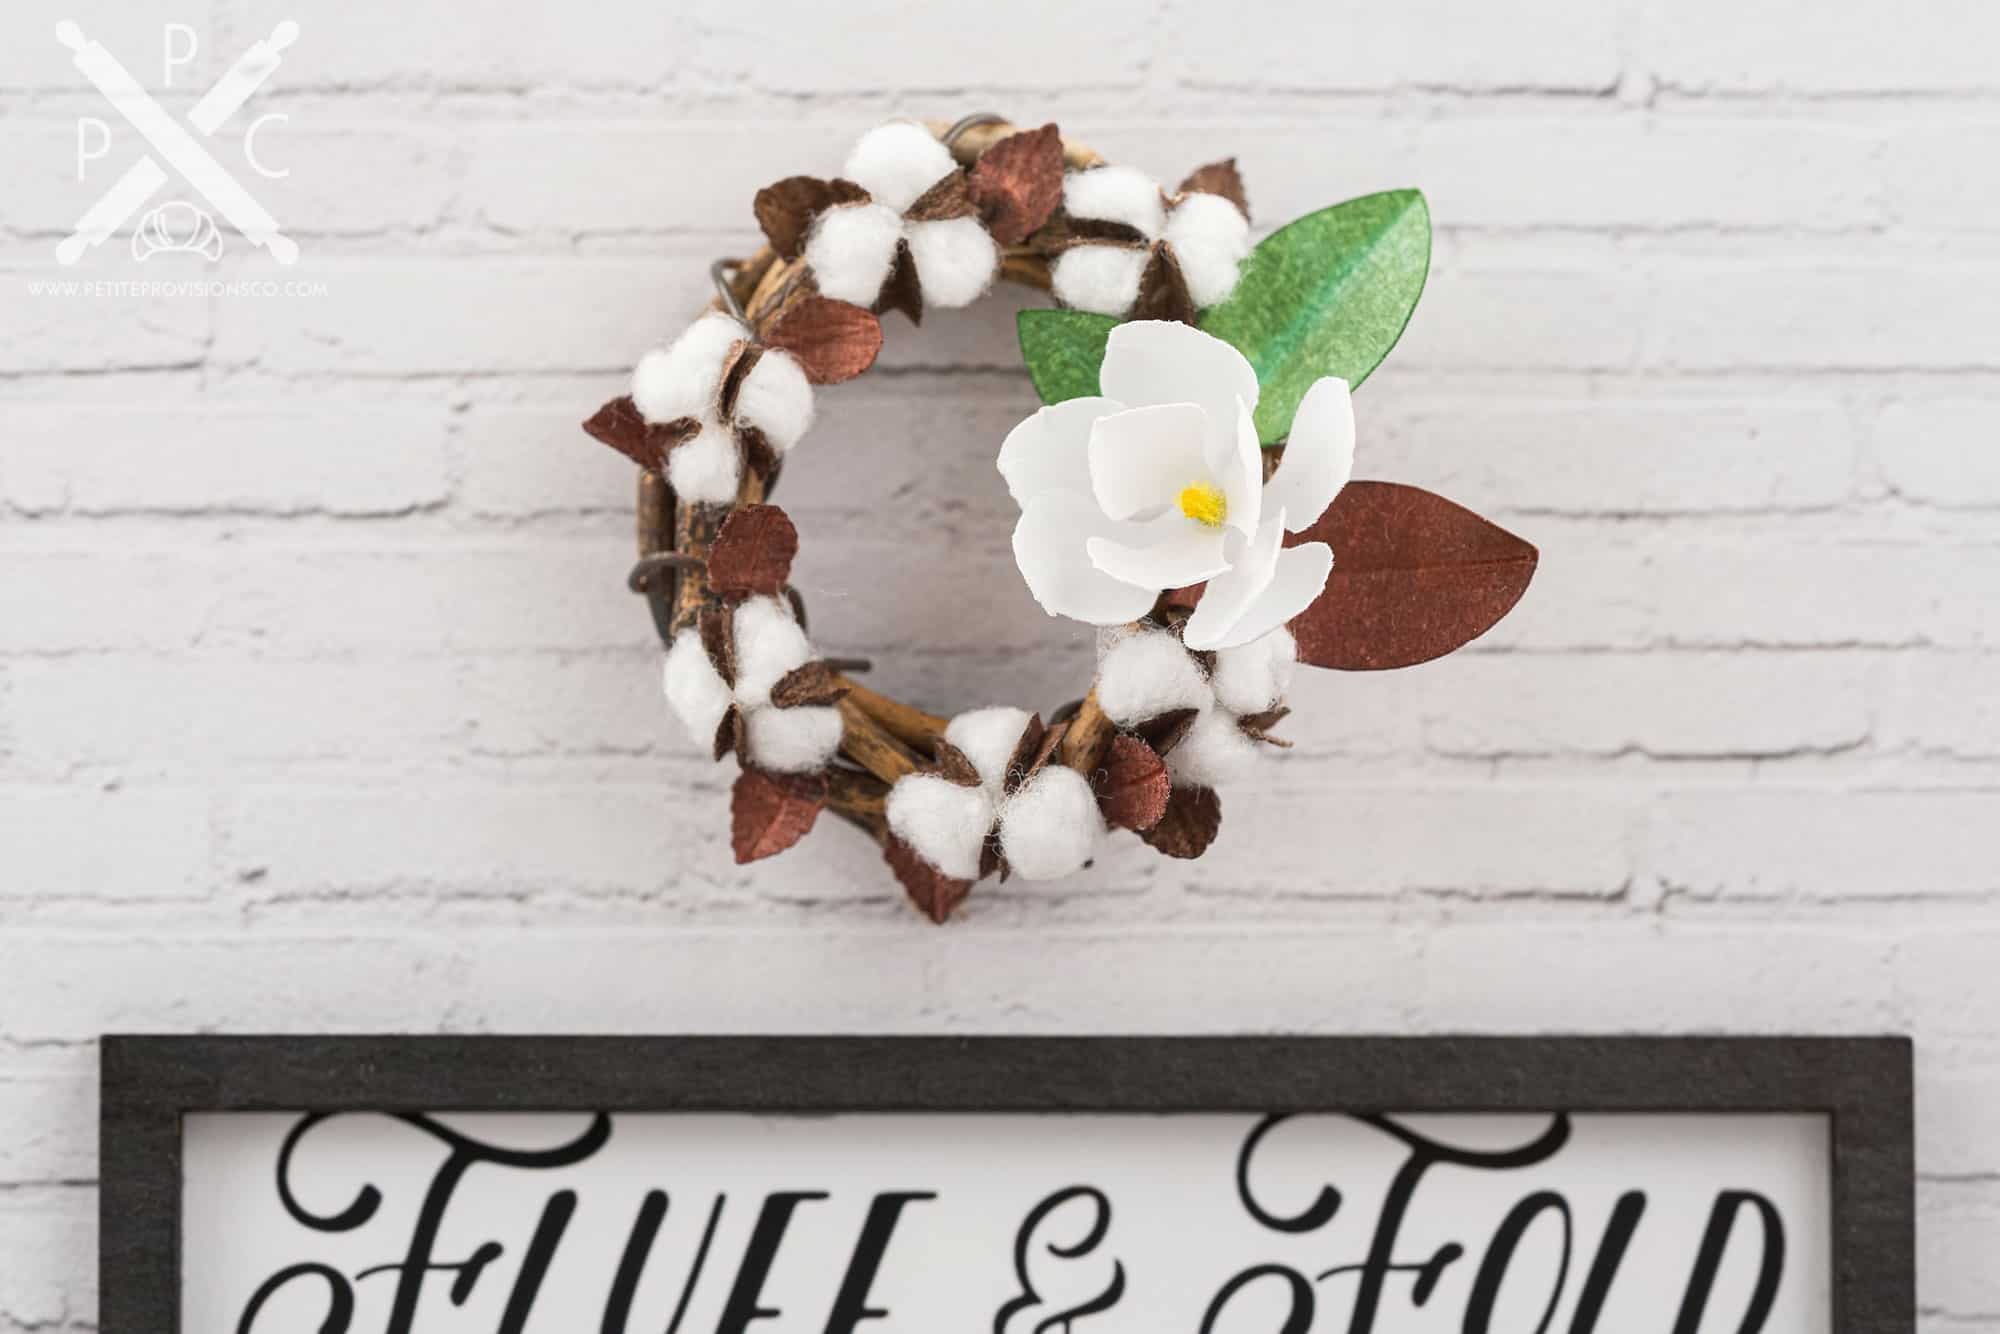 A handmade miniature wreath with cotton and magnolia in a one-inch scale laundry room scene with farmhouse decor